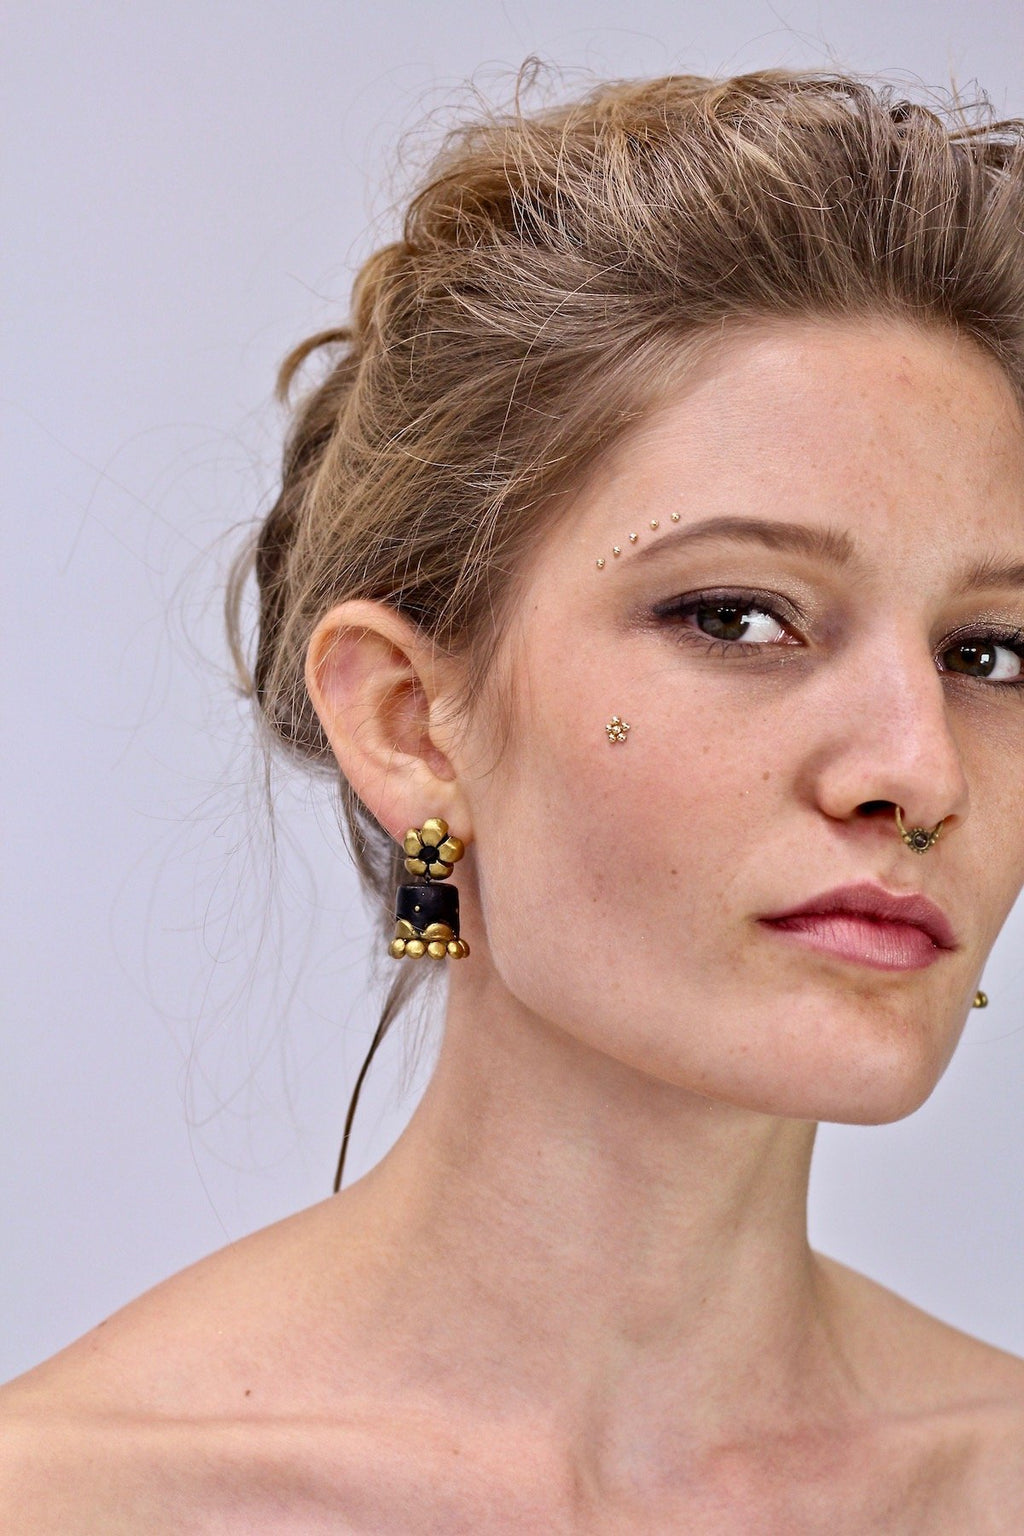 Black Daisy - Boucles d'oreilles - Azaadi, la mode responsable accessible